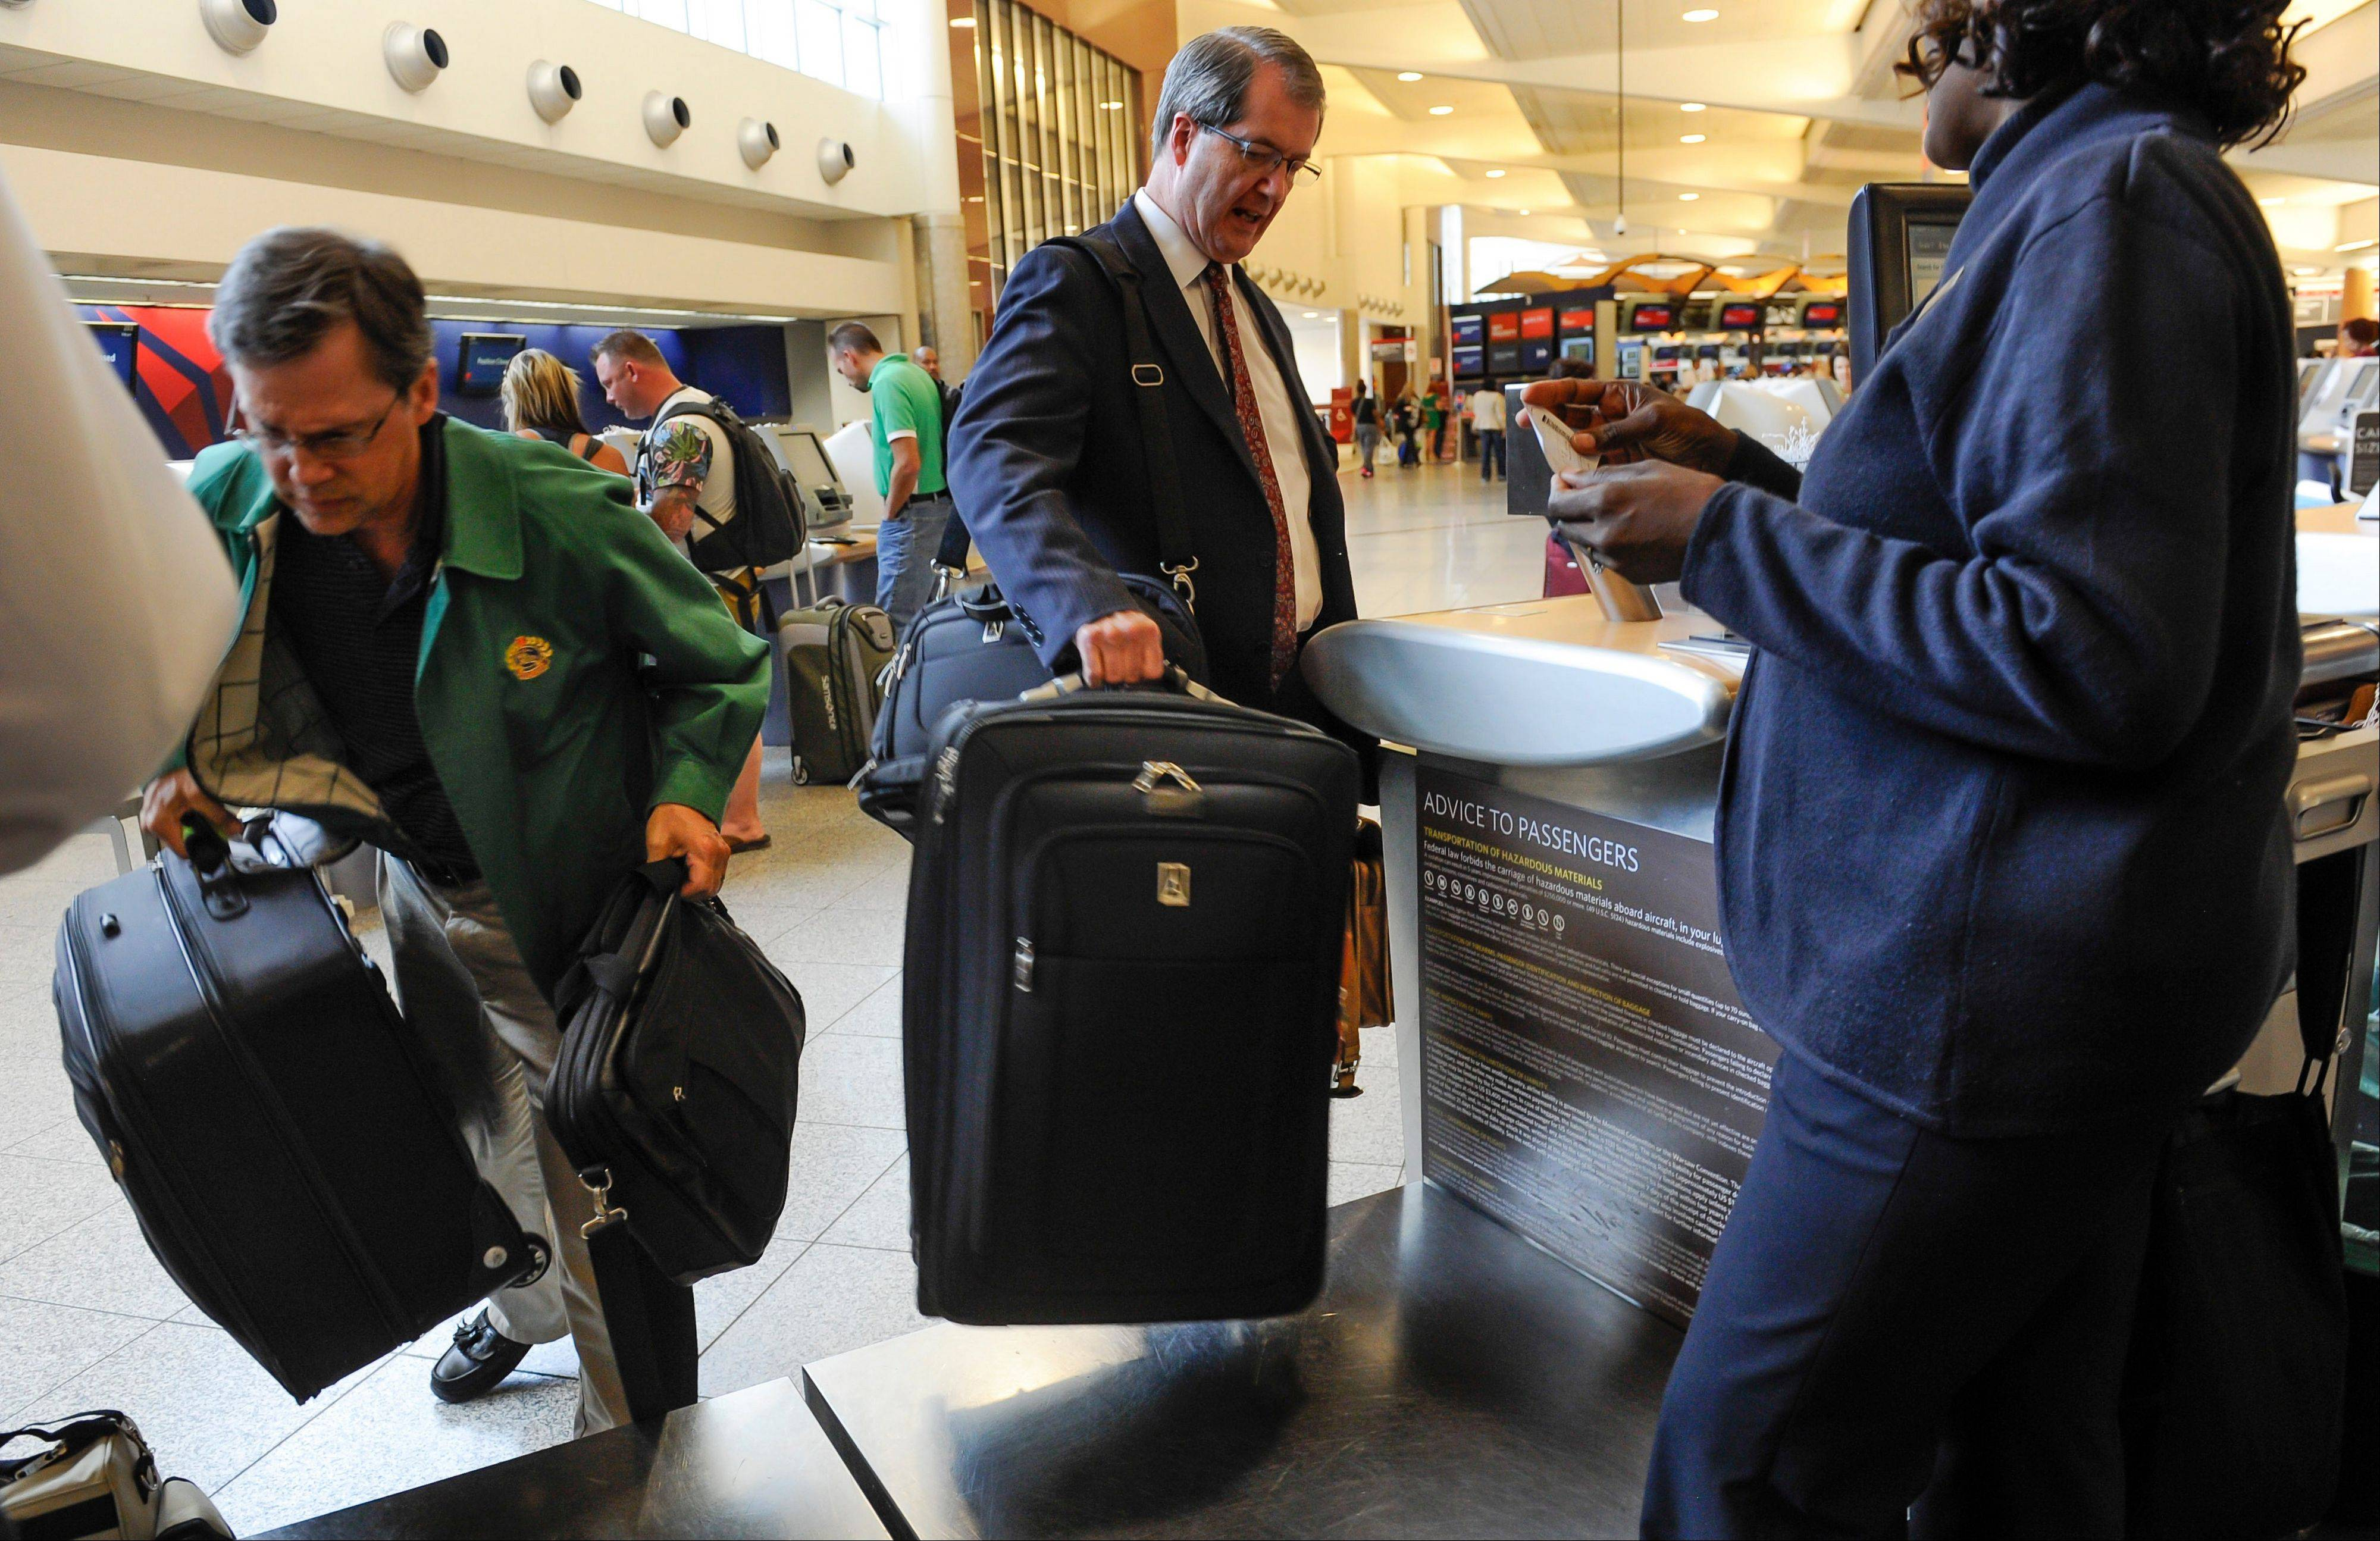 Passengers check in their luggage at the Delta counter at Hartsfield-Jackson Atlanta International Airport in Atlanta. Delta customers now have the option to purchase an upgrade that includes a free checked bag, among other perks.